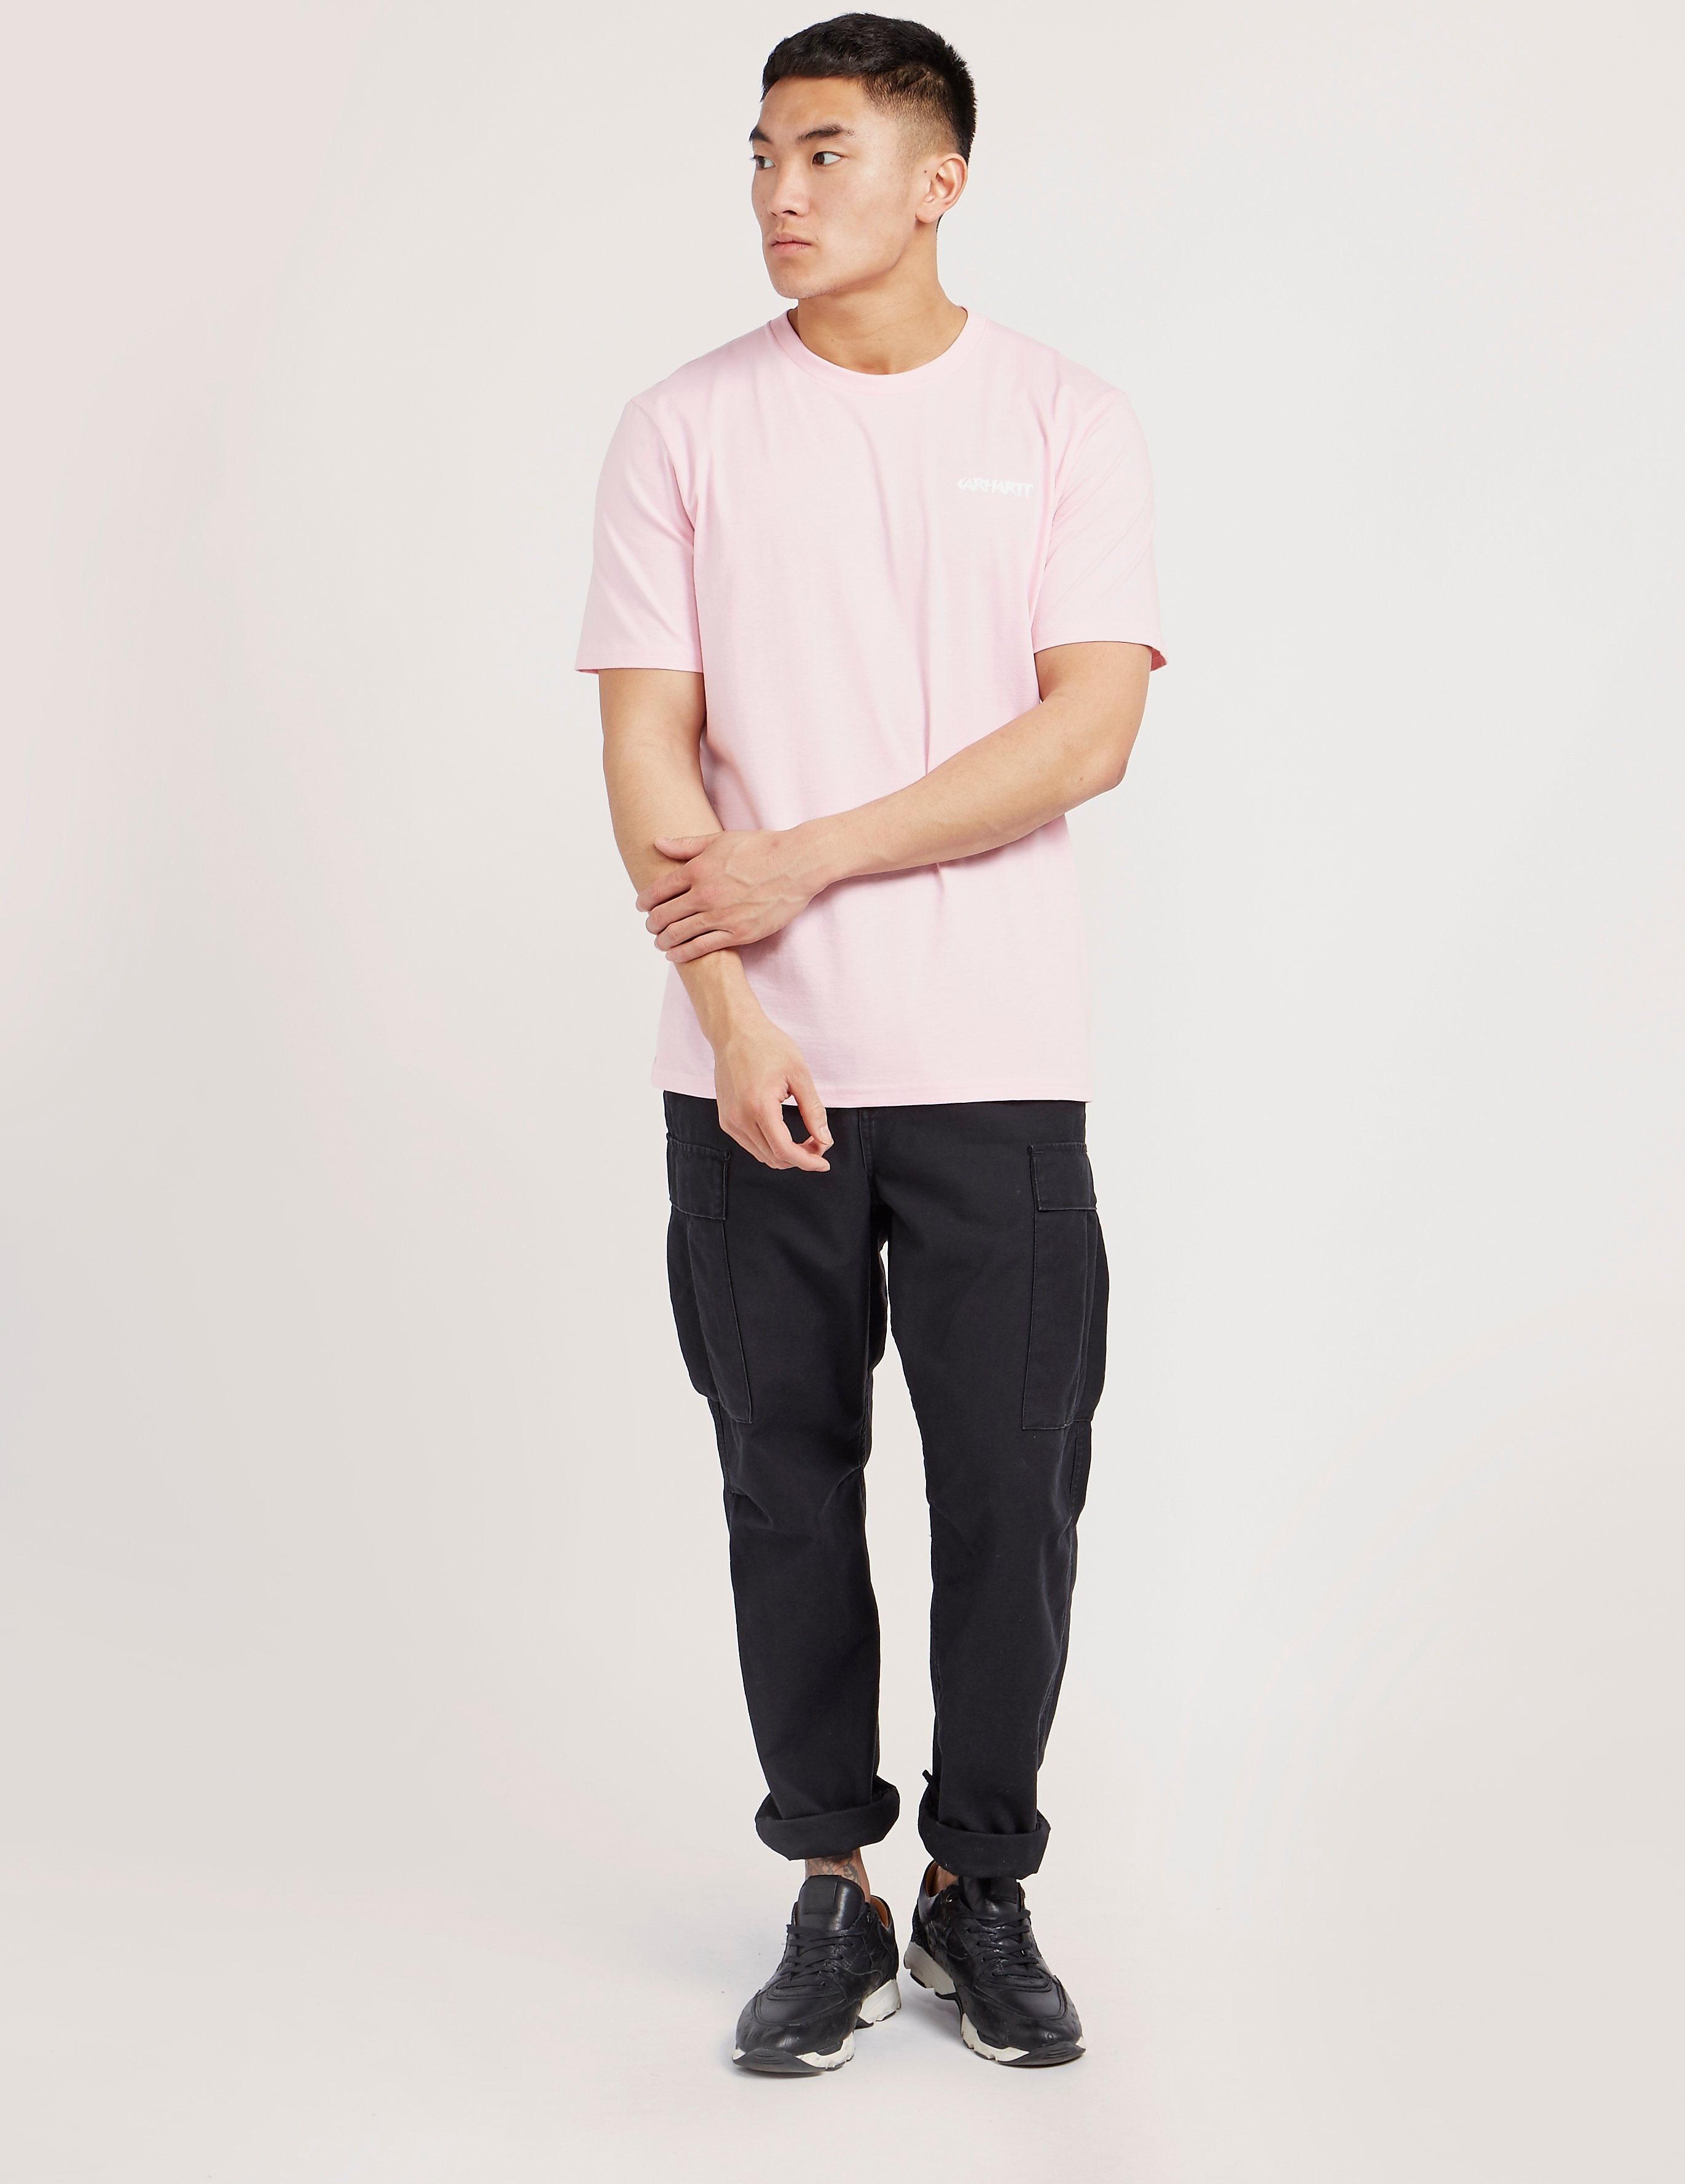 Carhartt WIP Flamingo Script Short Sleeve T-Shirt